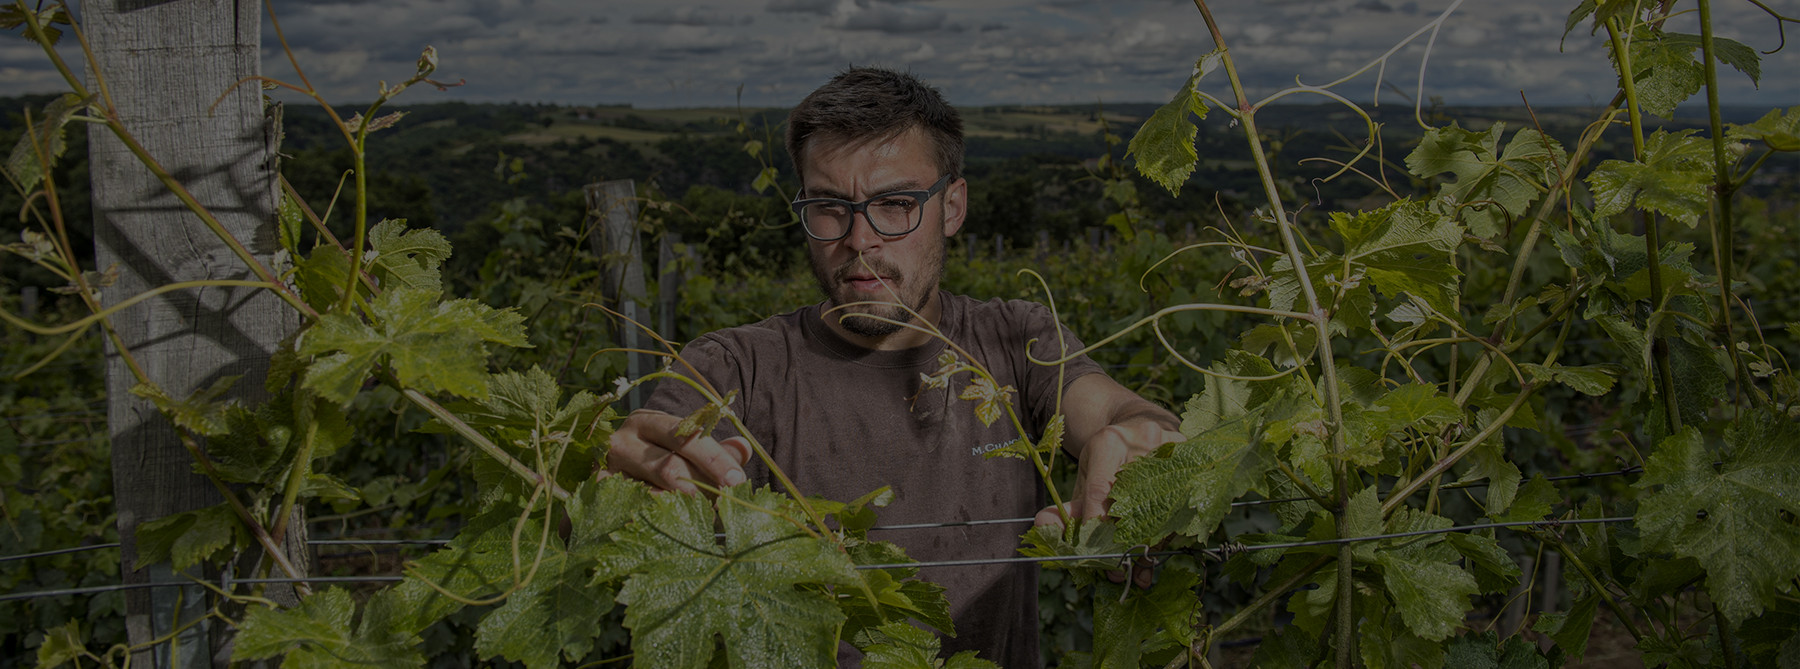 Maxime Chapoutier in La Combe Pilate vines